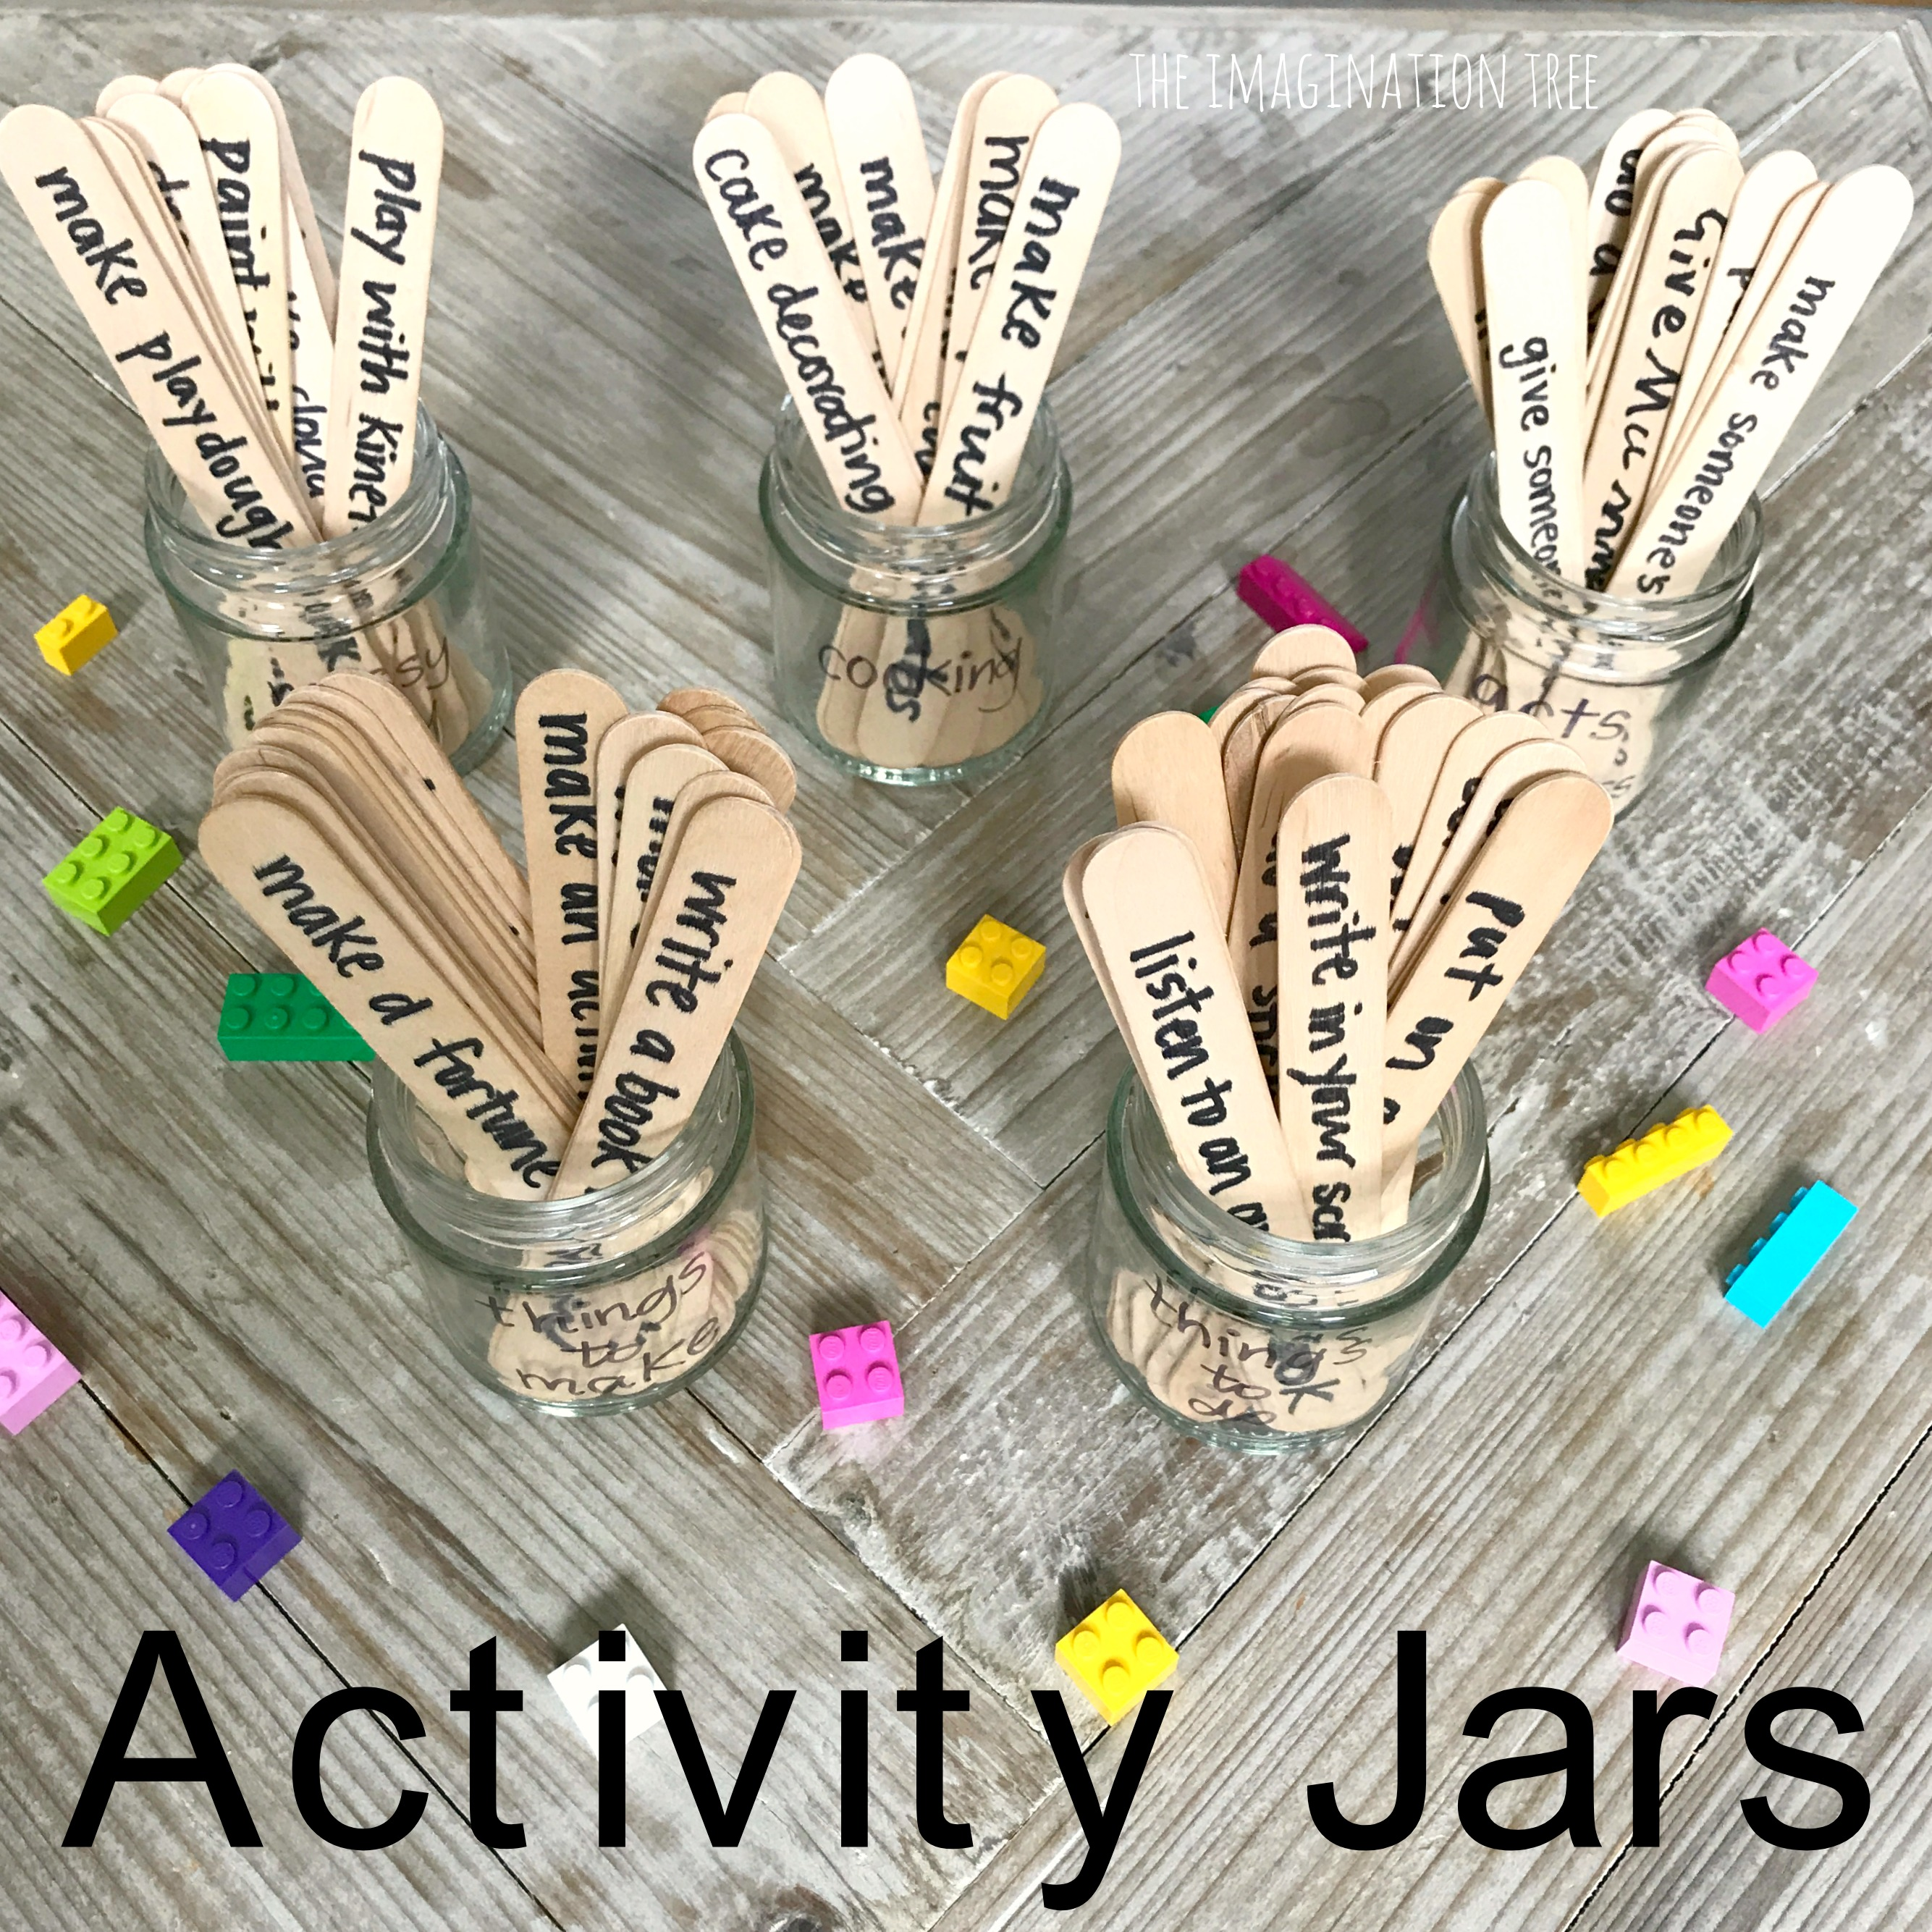 Activity Jars For Busy Kids The Imagination Tree